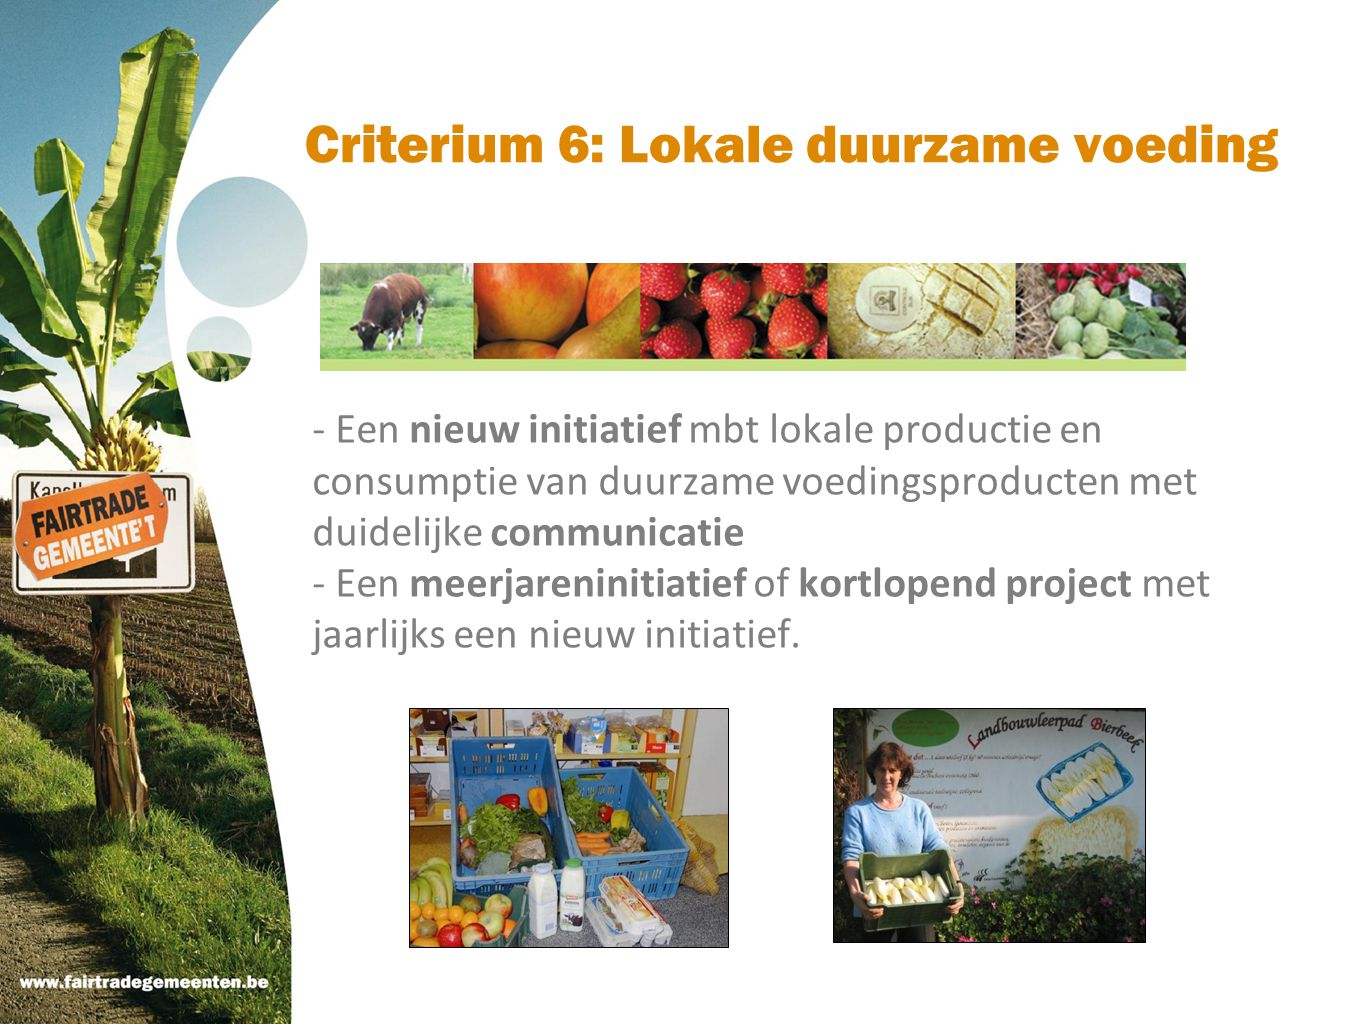 Criterium 6: Lokale duurzame voeding